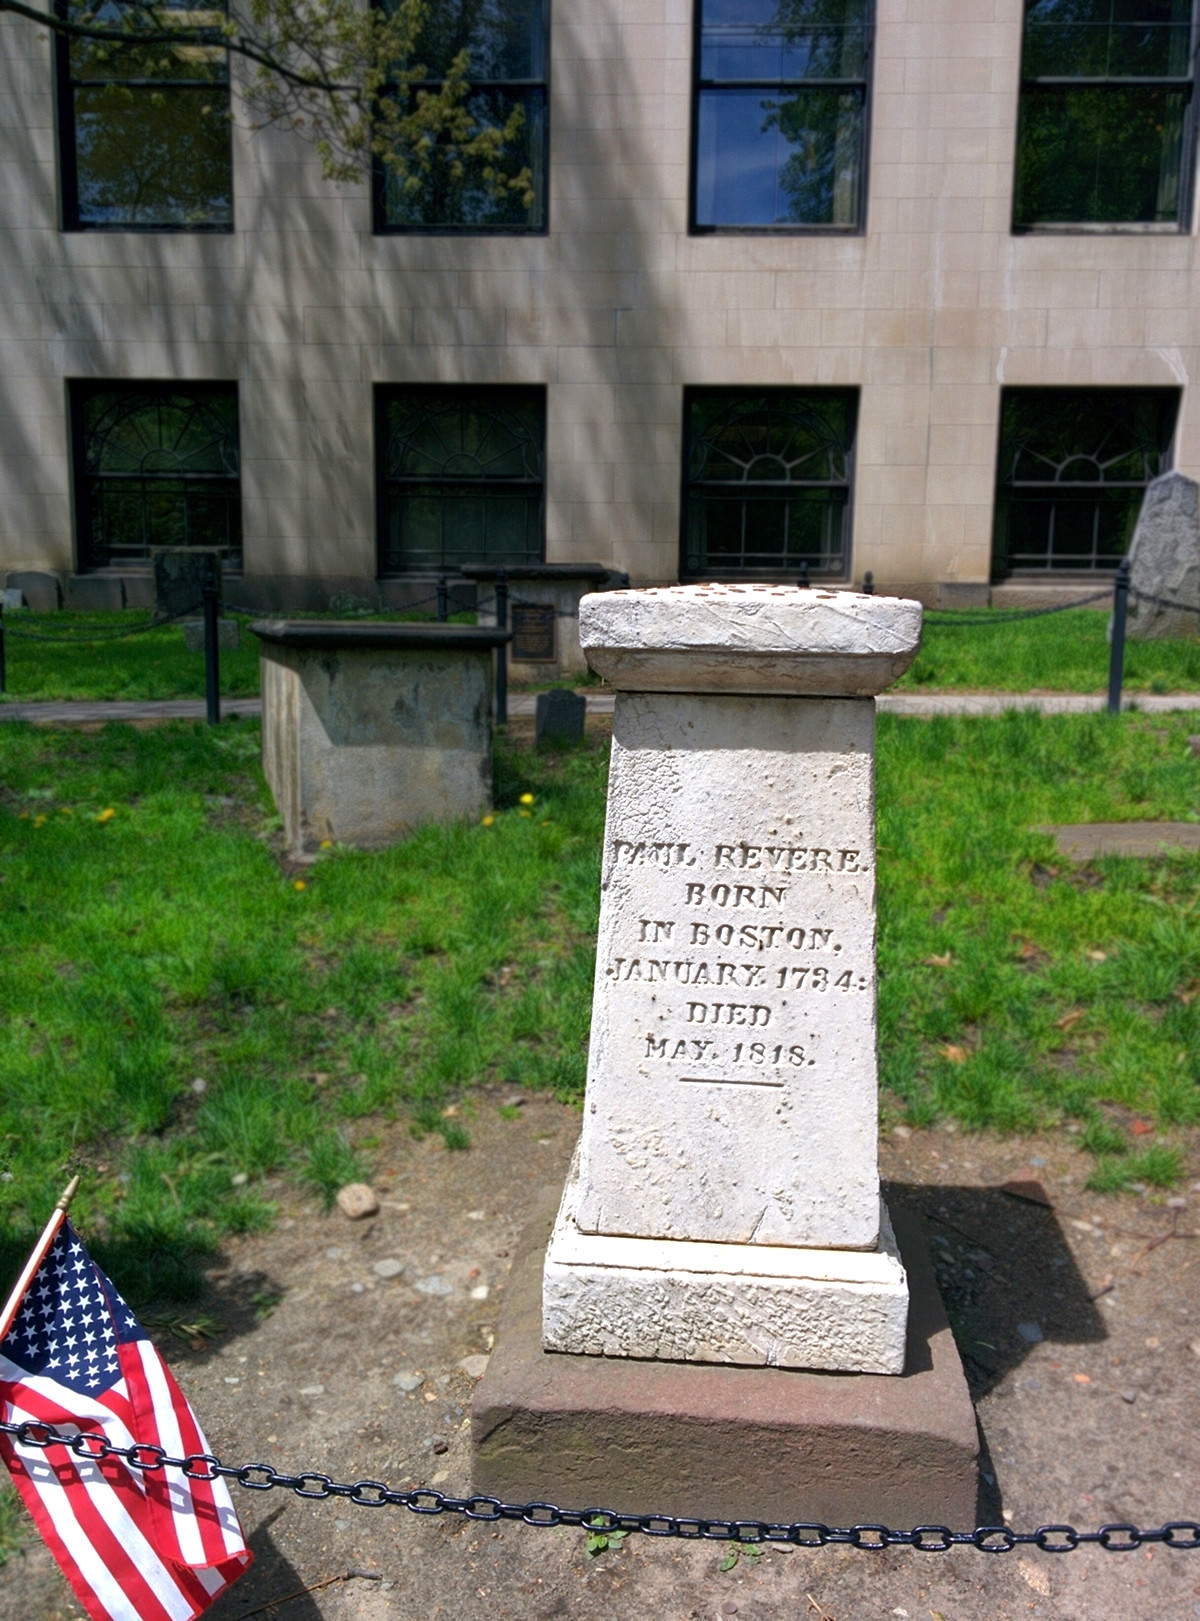 Paul Revere's memorial at the Granary Burying Ground